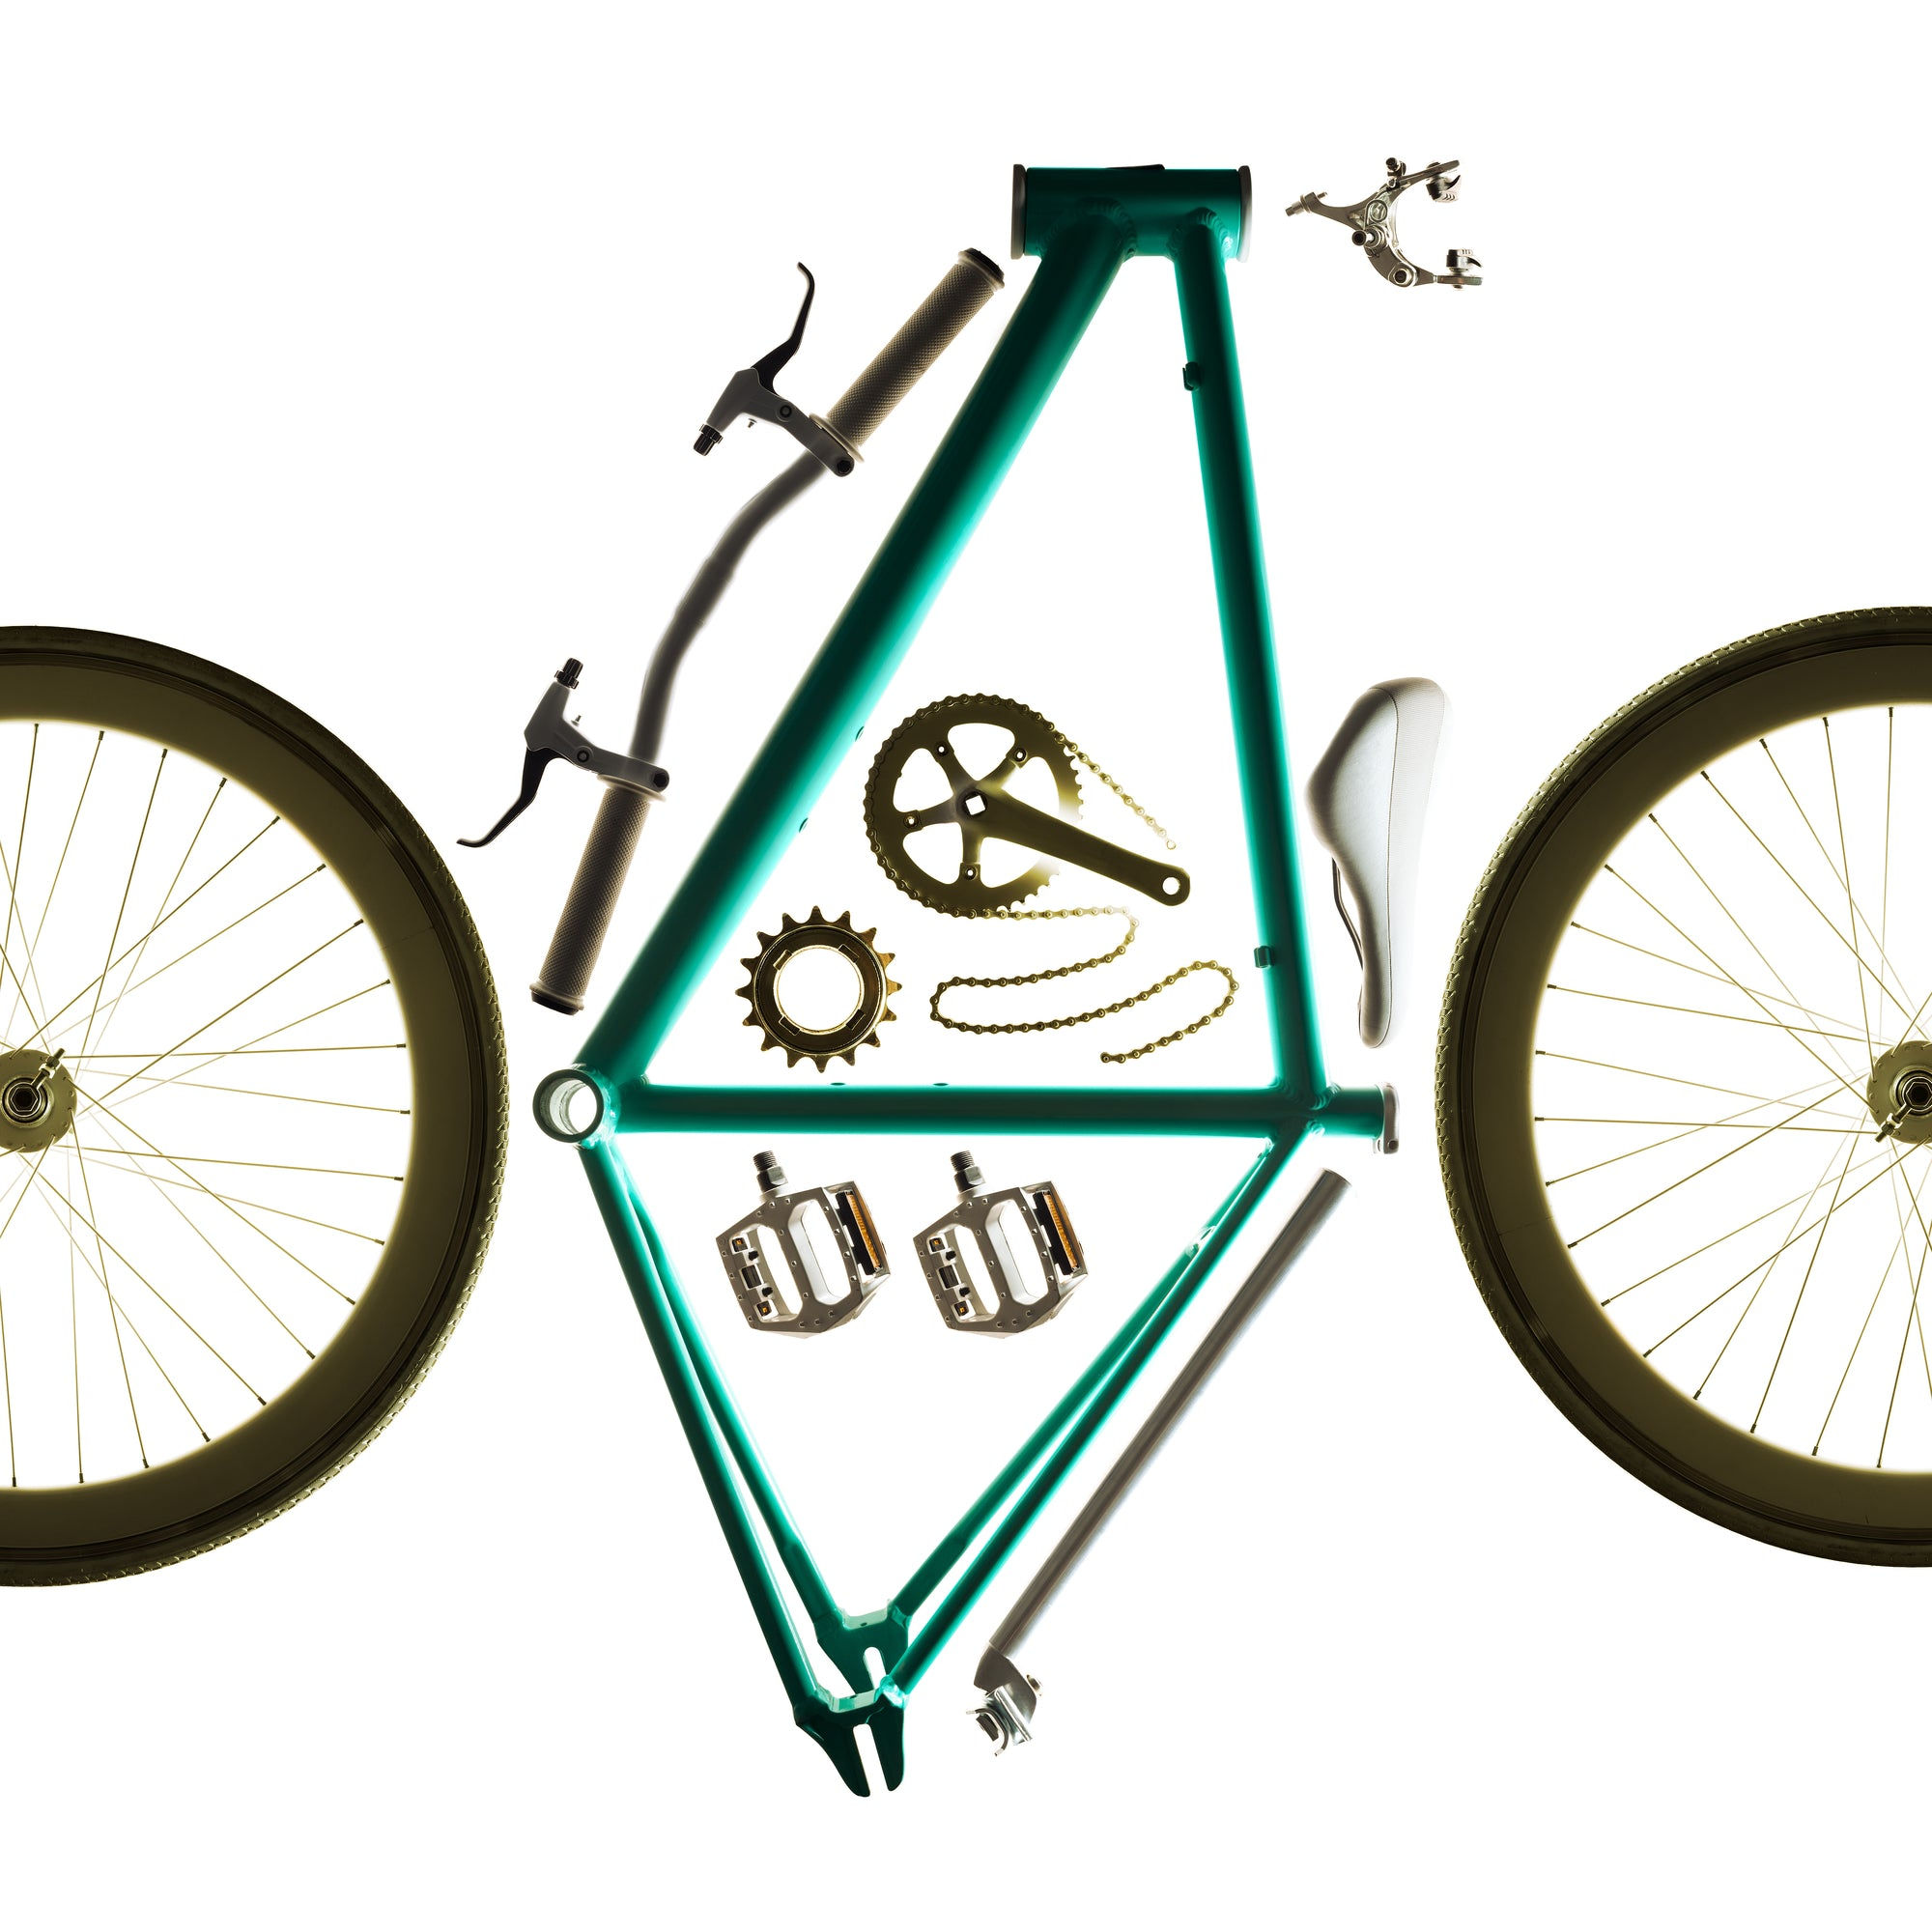 A Guide To Assembling & Maintaining Your Sixthreezero Bike (Hybrid, Cruiser, City)